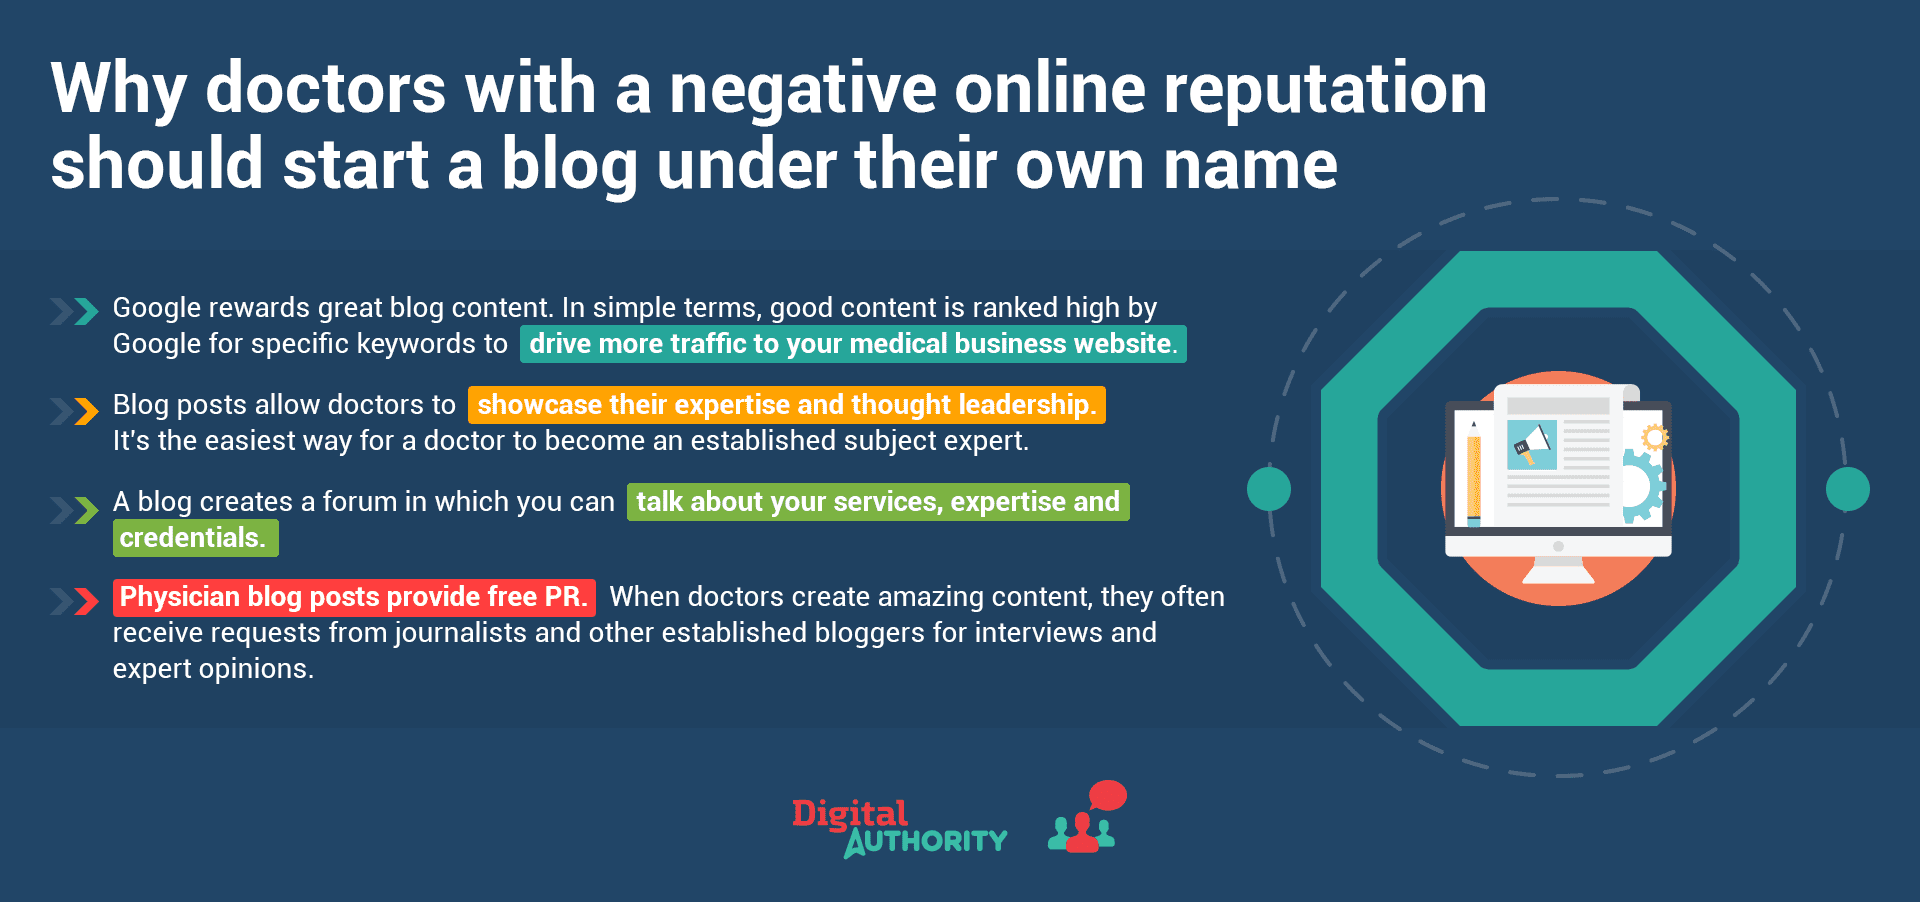 Infographic explaining why doctors with a negative online reputation should start a blog